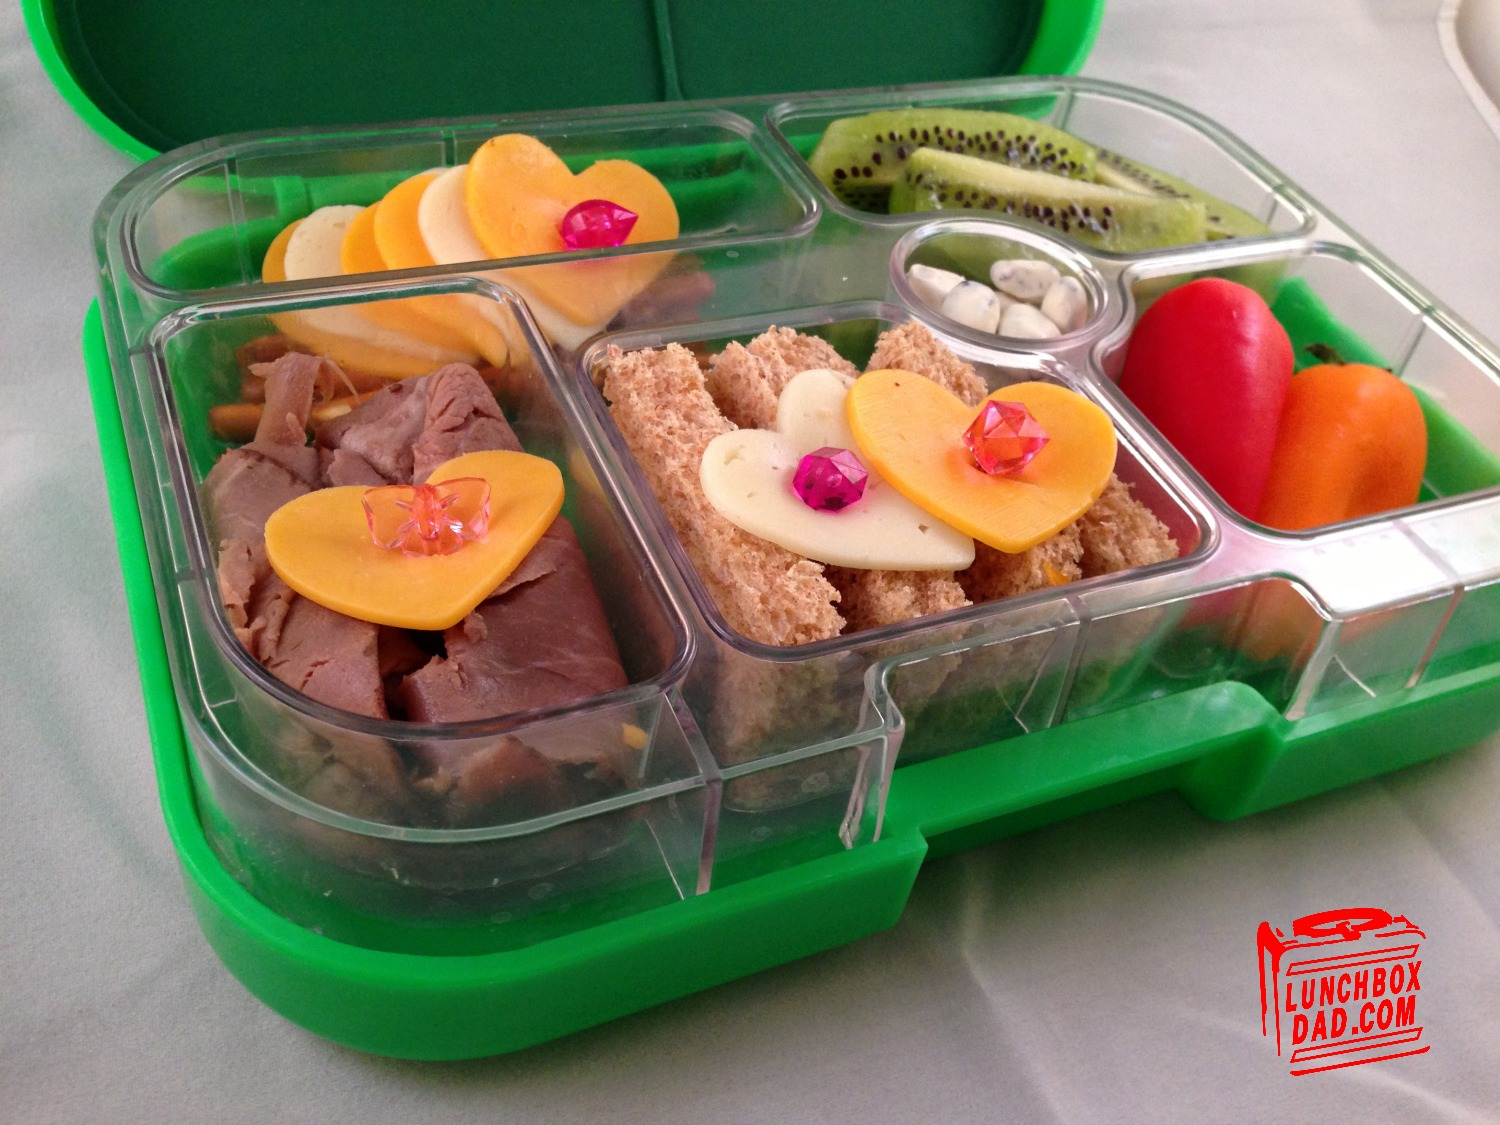 Lunchbox Dad Lunchbox And Meal Tool Product Reviews